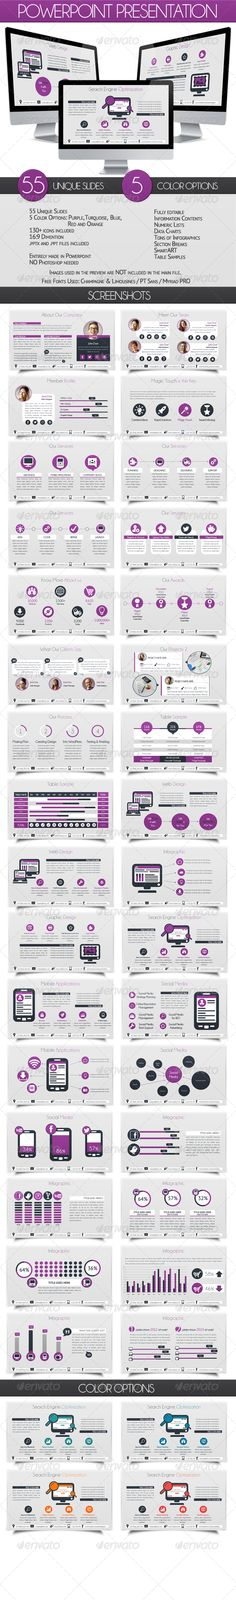 Powerpoint Business Presentation - Business Powerpoint Templates